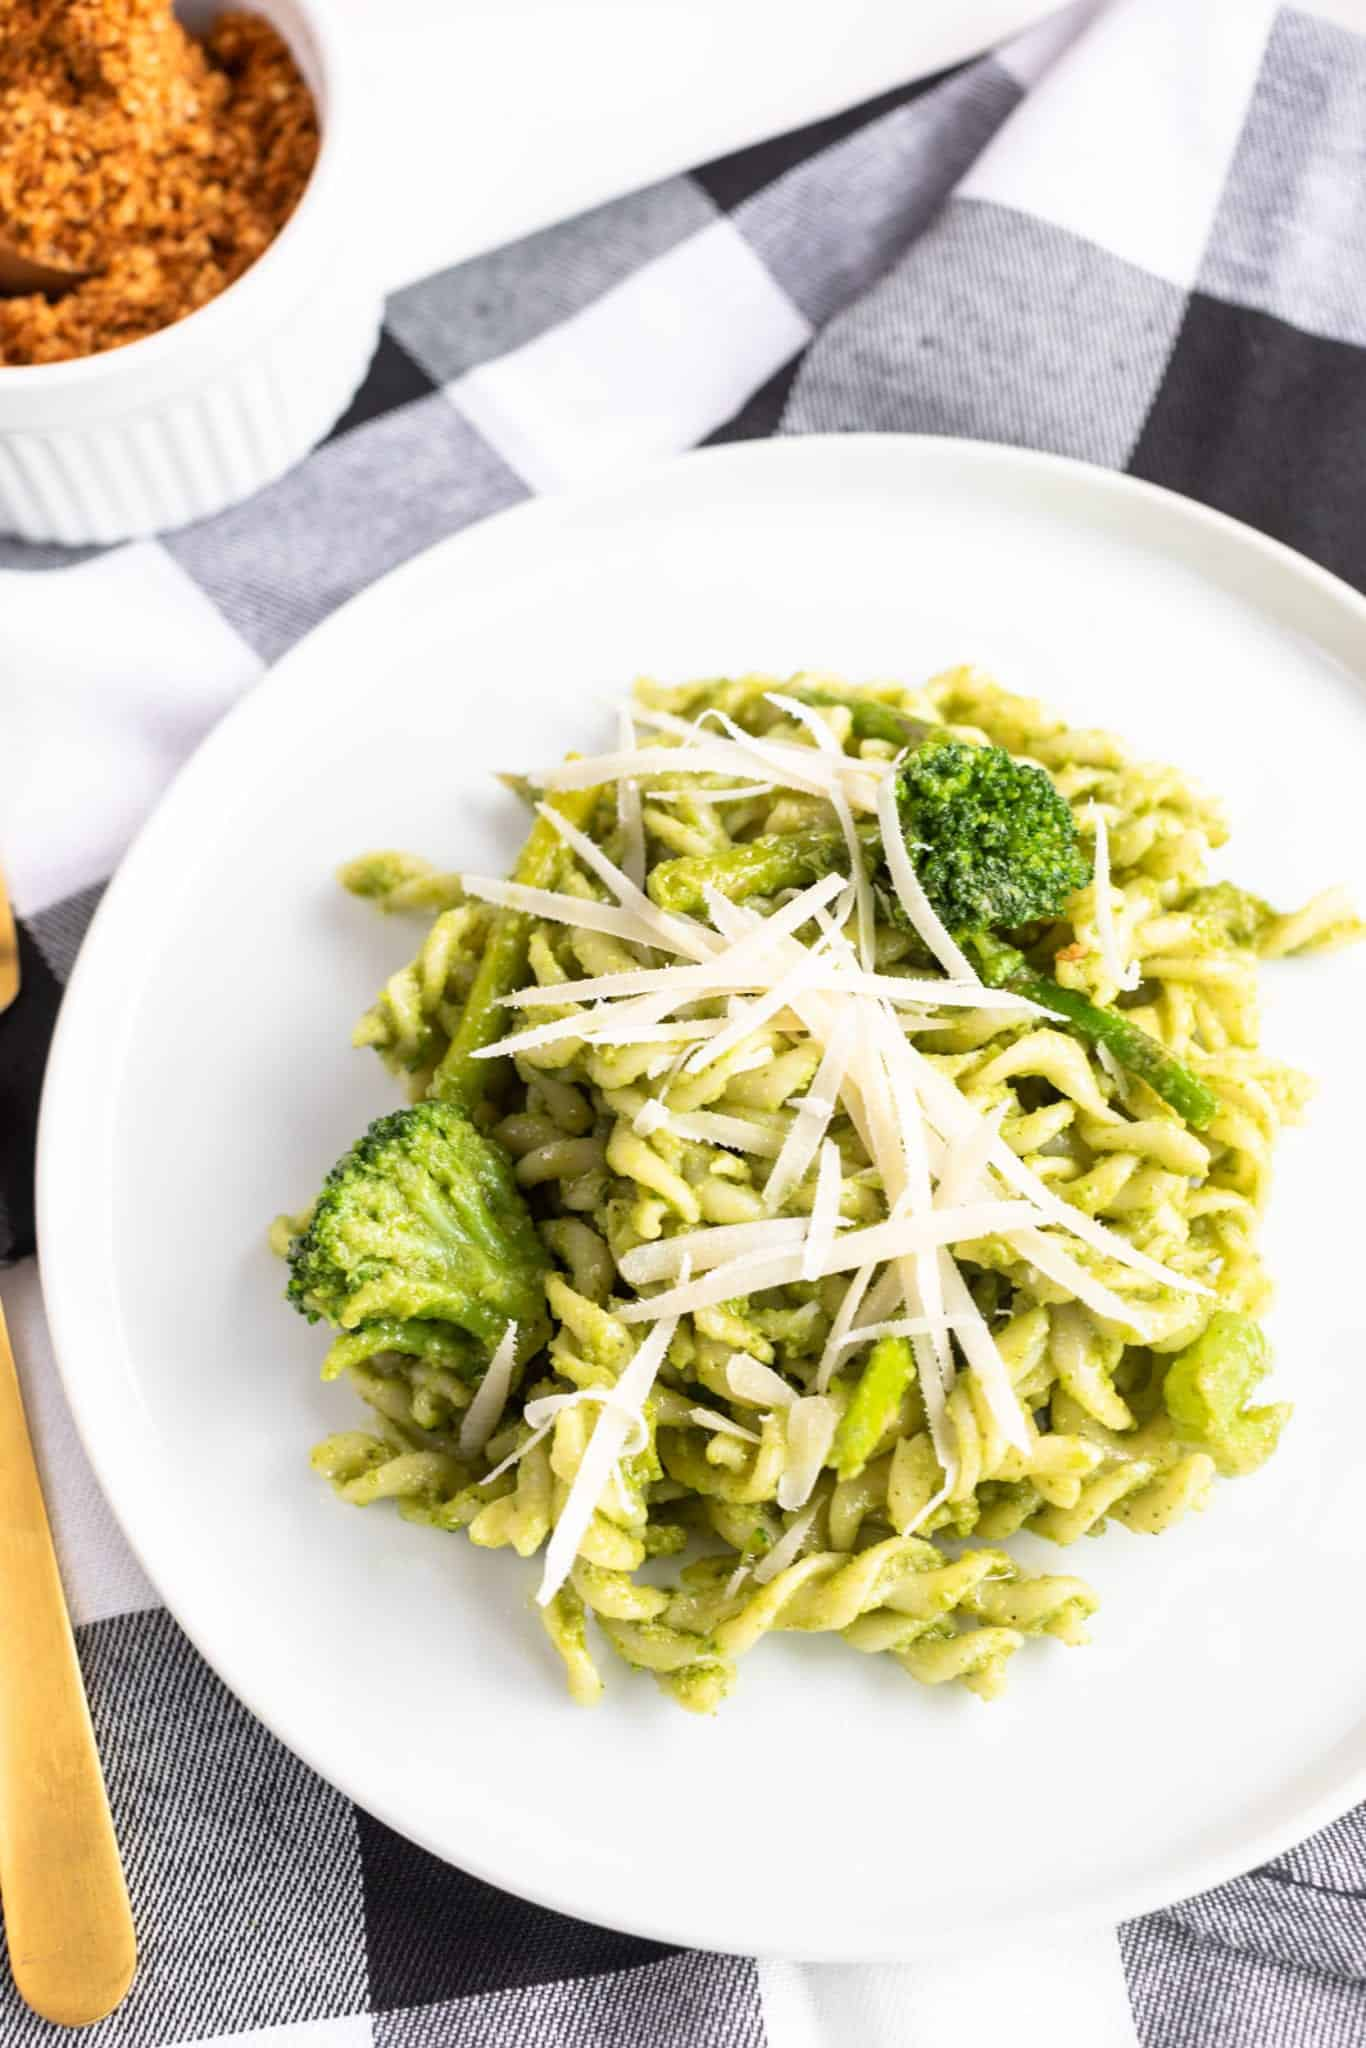 Fusilli Pasta & Fresh Basil Pesto with grated Parmesan on top. Served on white plate with plaid napkin and toasted breadcrumbs on the side served in white ramekin with wooden spoon. #pestopasta #easyrecipes #fusilli #greenrecipes #weeknightrecipes #pastadish #pasta #breadcrumbs #massimobottura